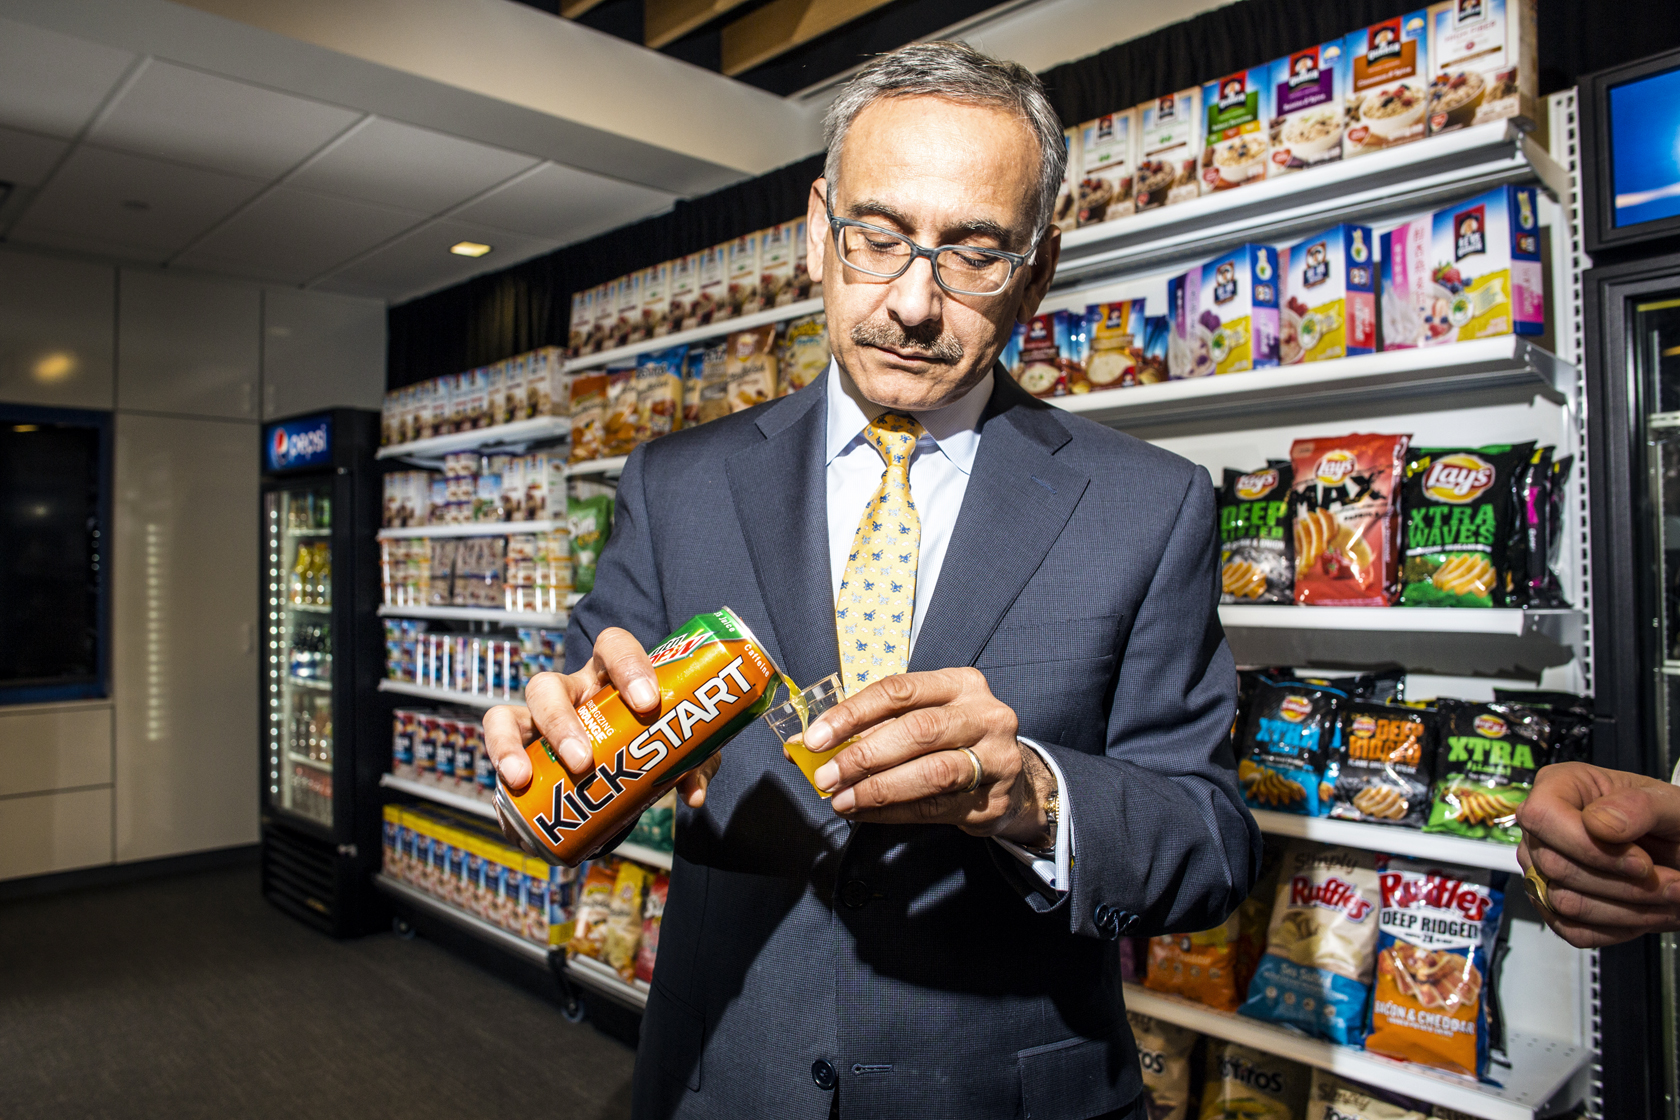 Mehmood Kahn at Pepsico headquarters. April 2015